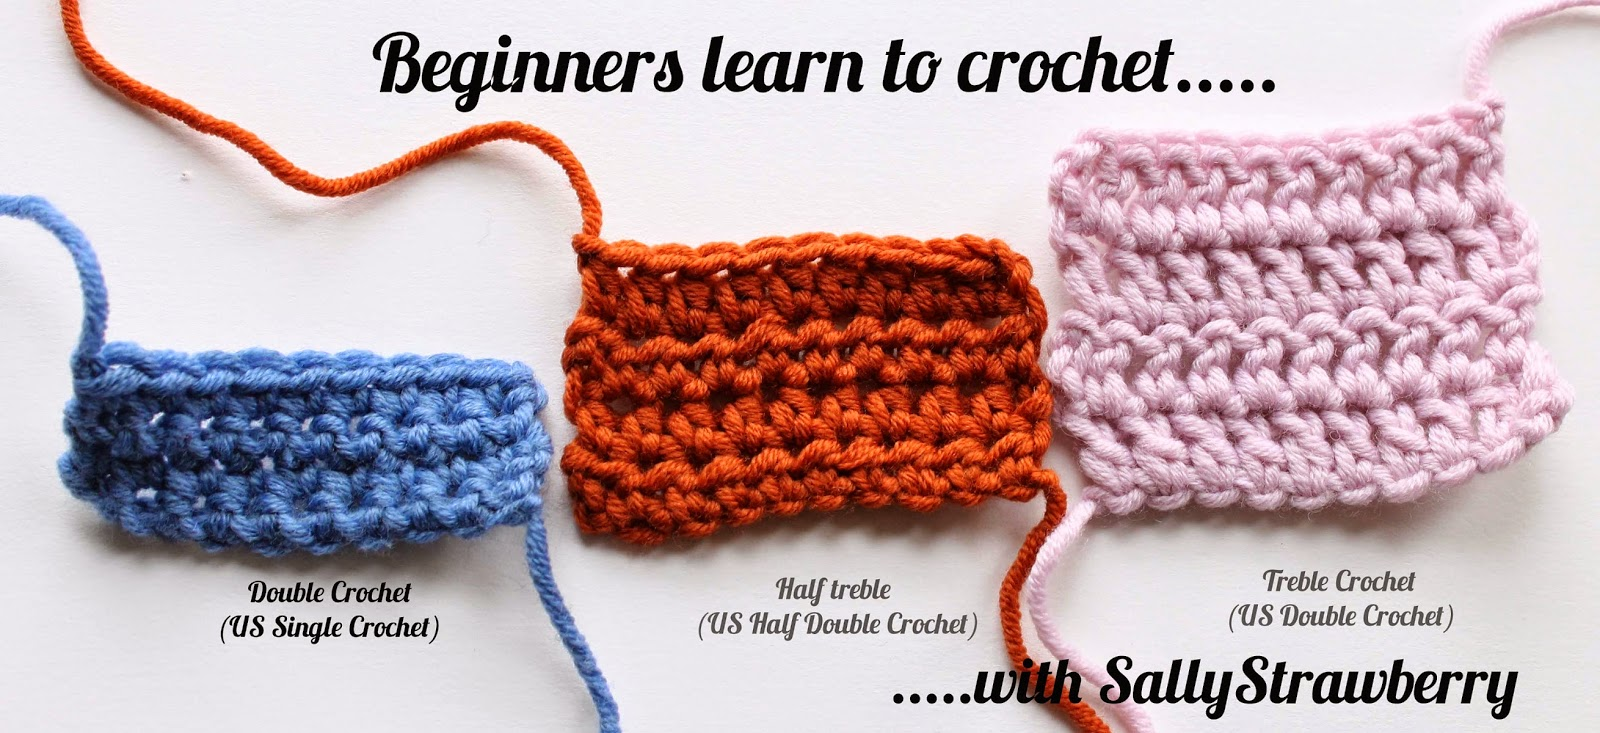 Crochet Stitches Uk To Us : SallyStrawberry: Learn to Crochet: Double Crochet